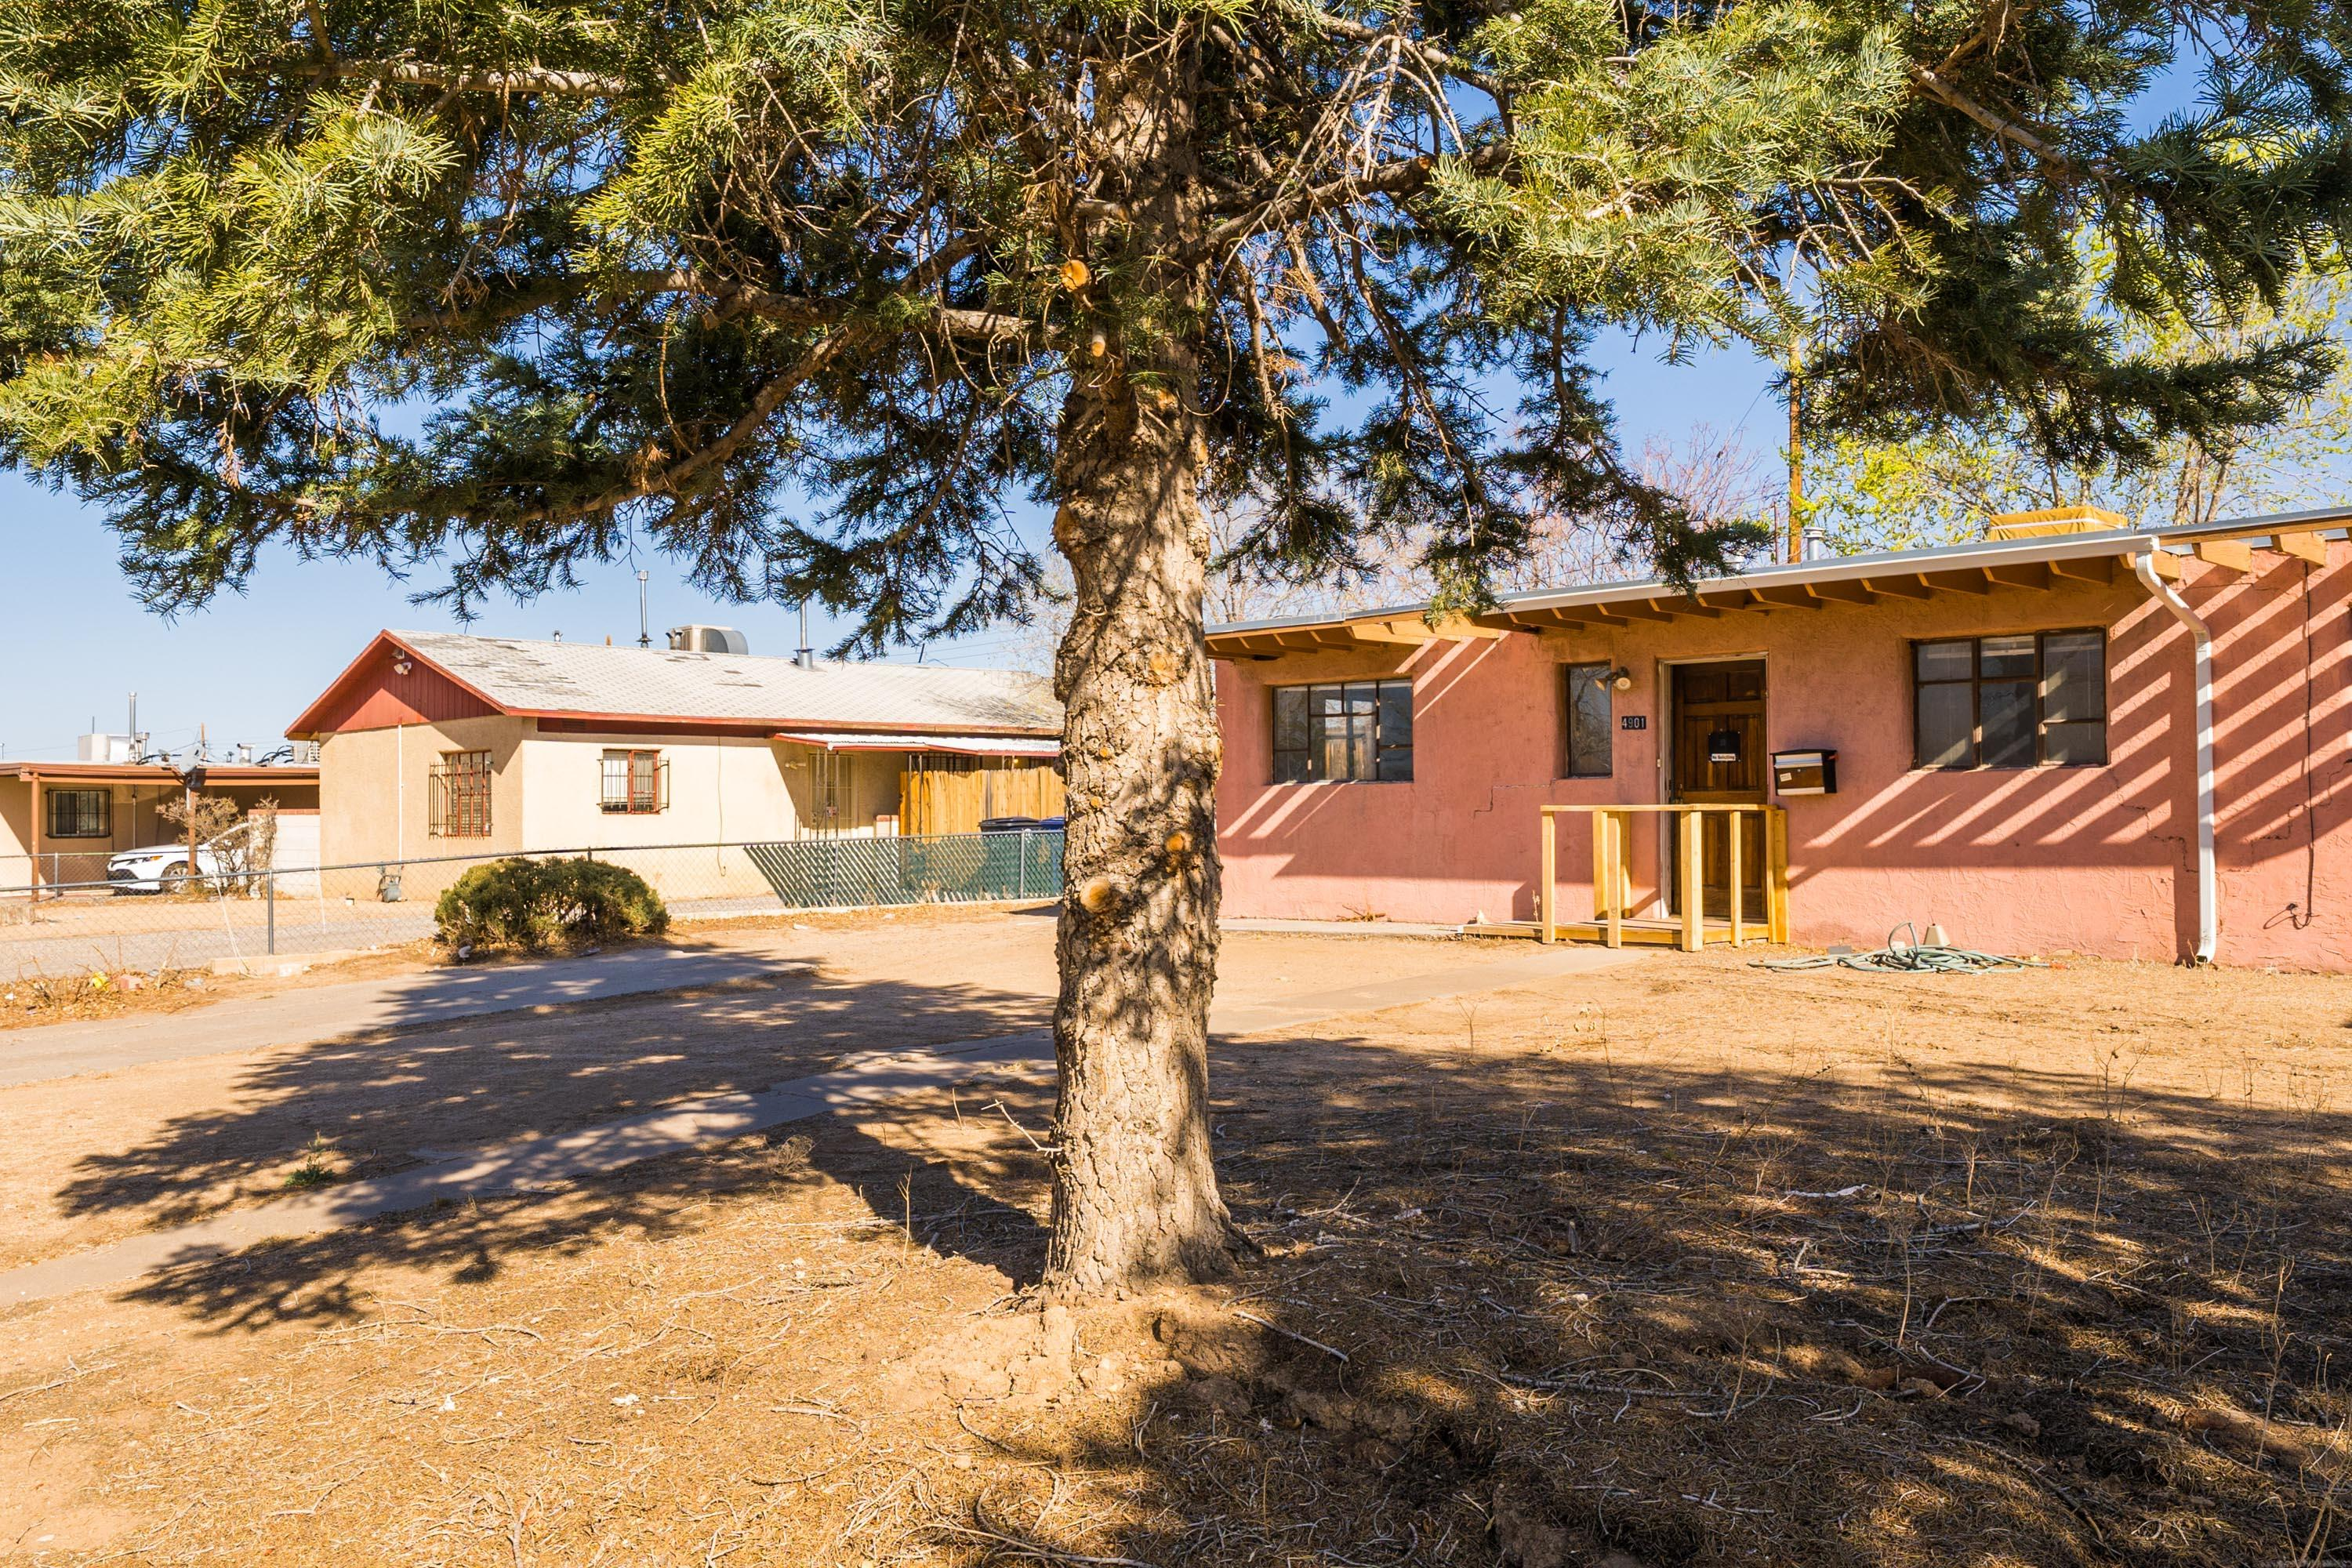 Great opportunity in Albuquerque!  Located in a nice, central location this home features 3 bedrooms and 1.5 bathrooms.  Large living room opens to the eat-in kitchen.  Big backyard with storage shed.  Cooler was replaced just over a year ago.  There aren't many homes priced in this range, don't miss your chance!  A little TLC will go a long way!